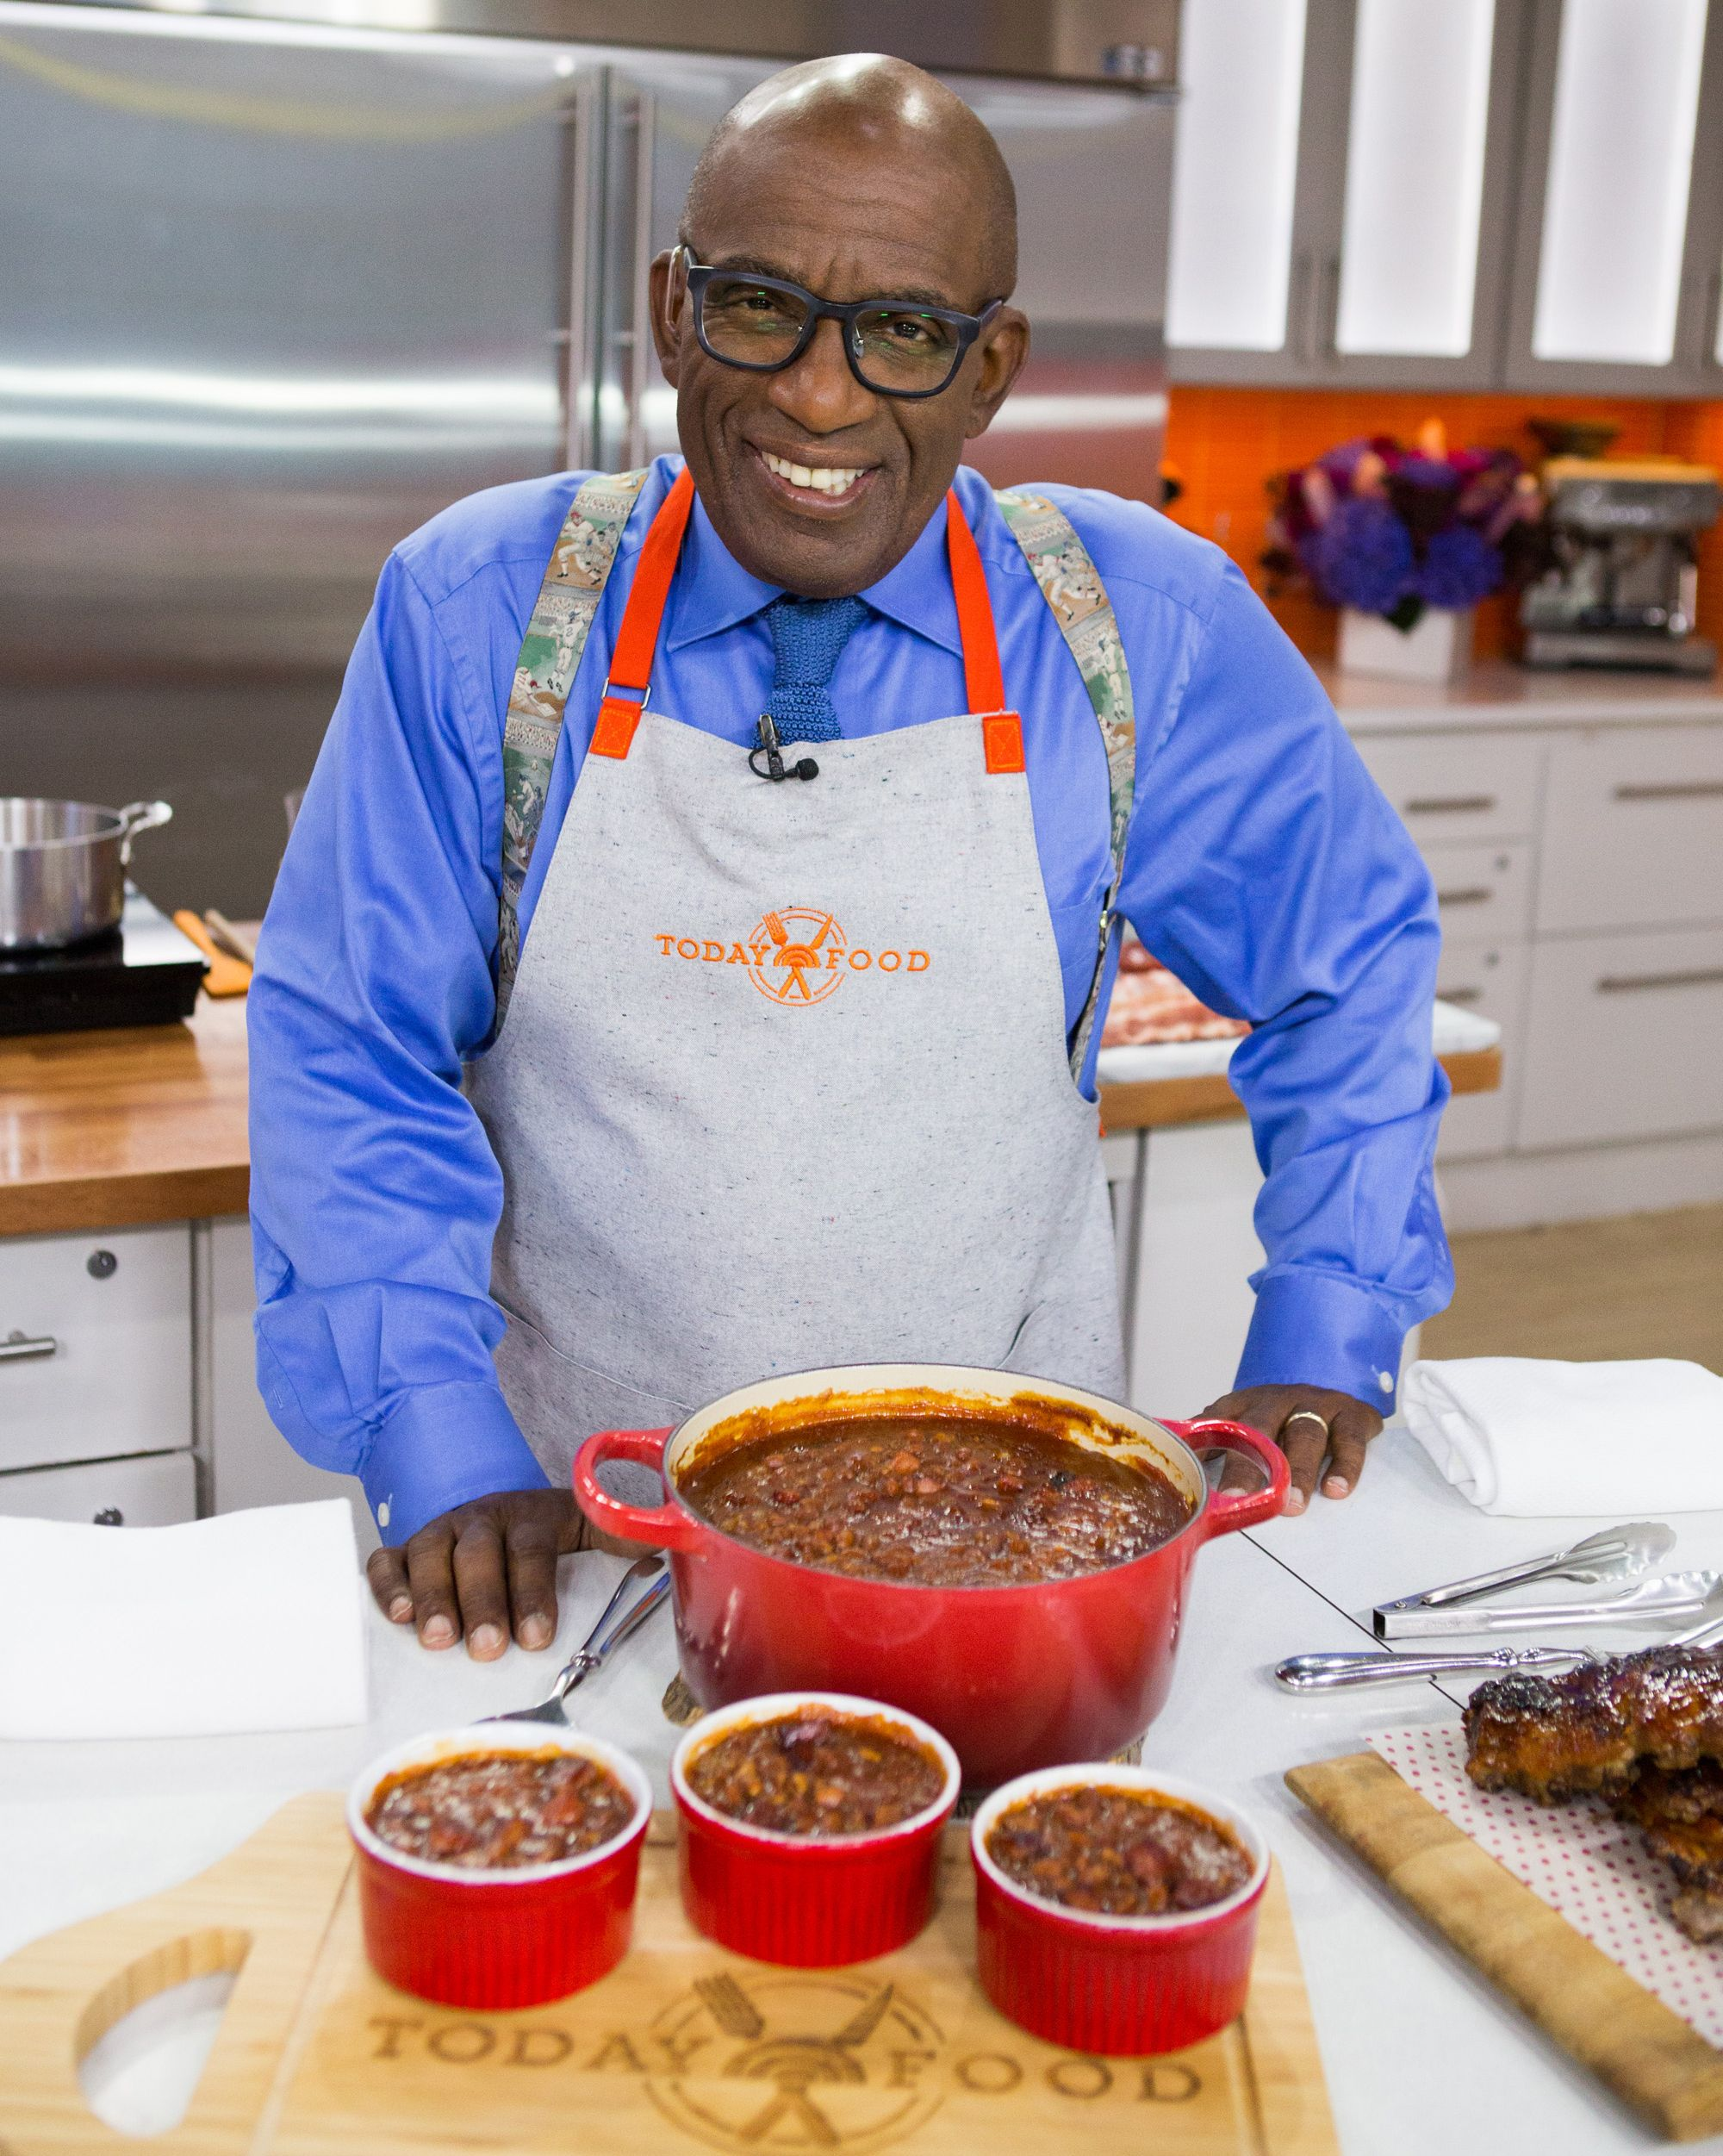 Al Roker Loses 40 Pounds and Lowers Cholesterol on Keto Diet